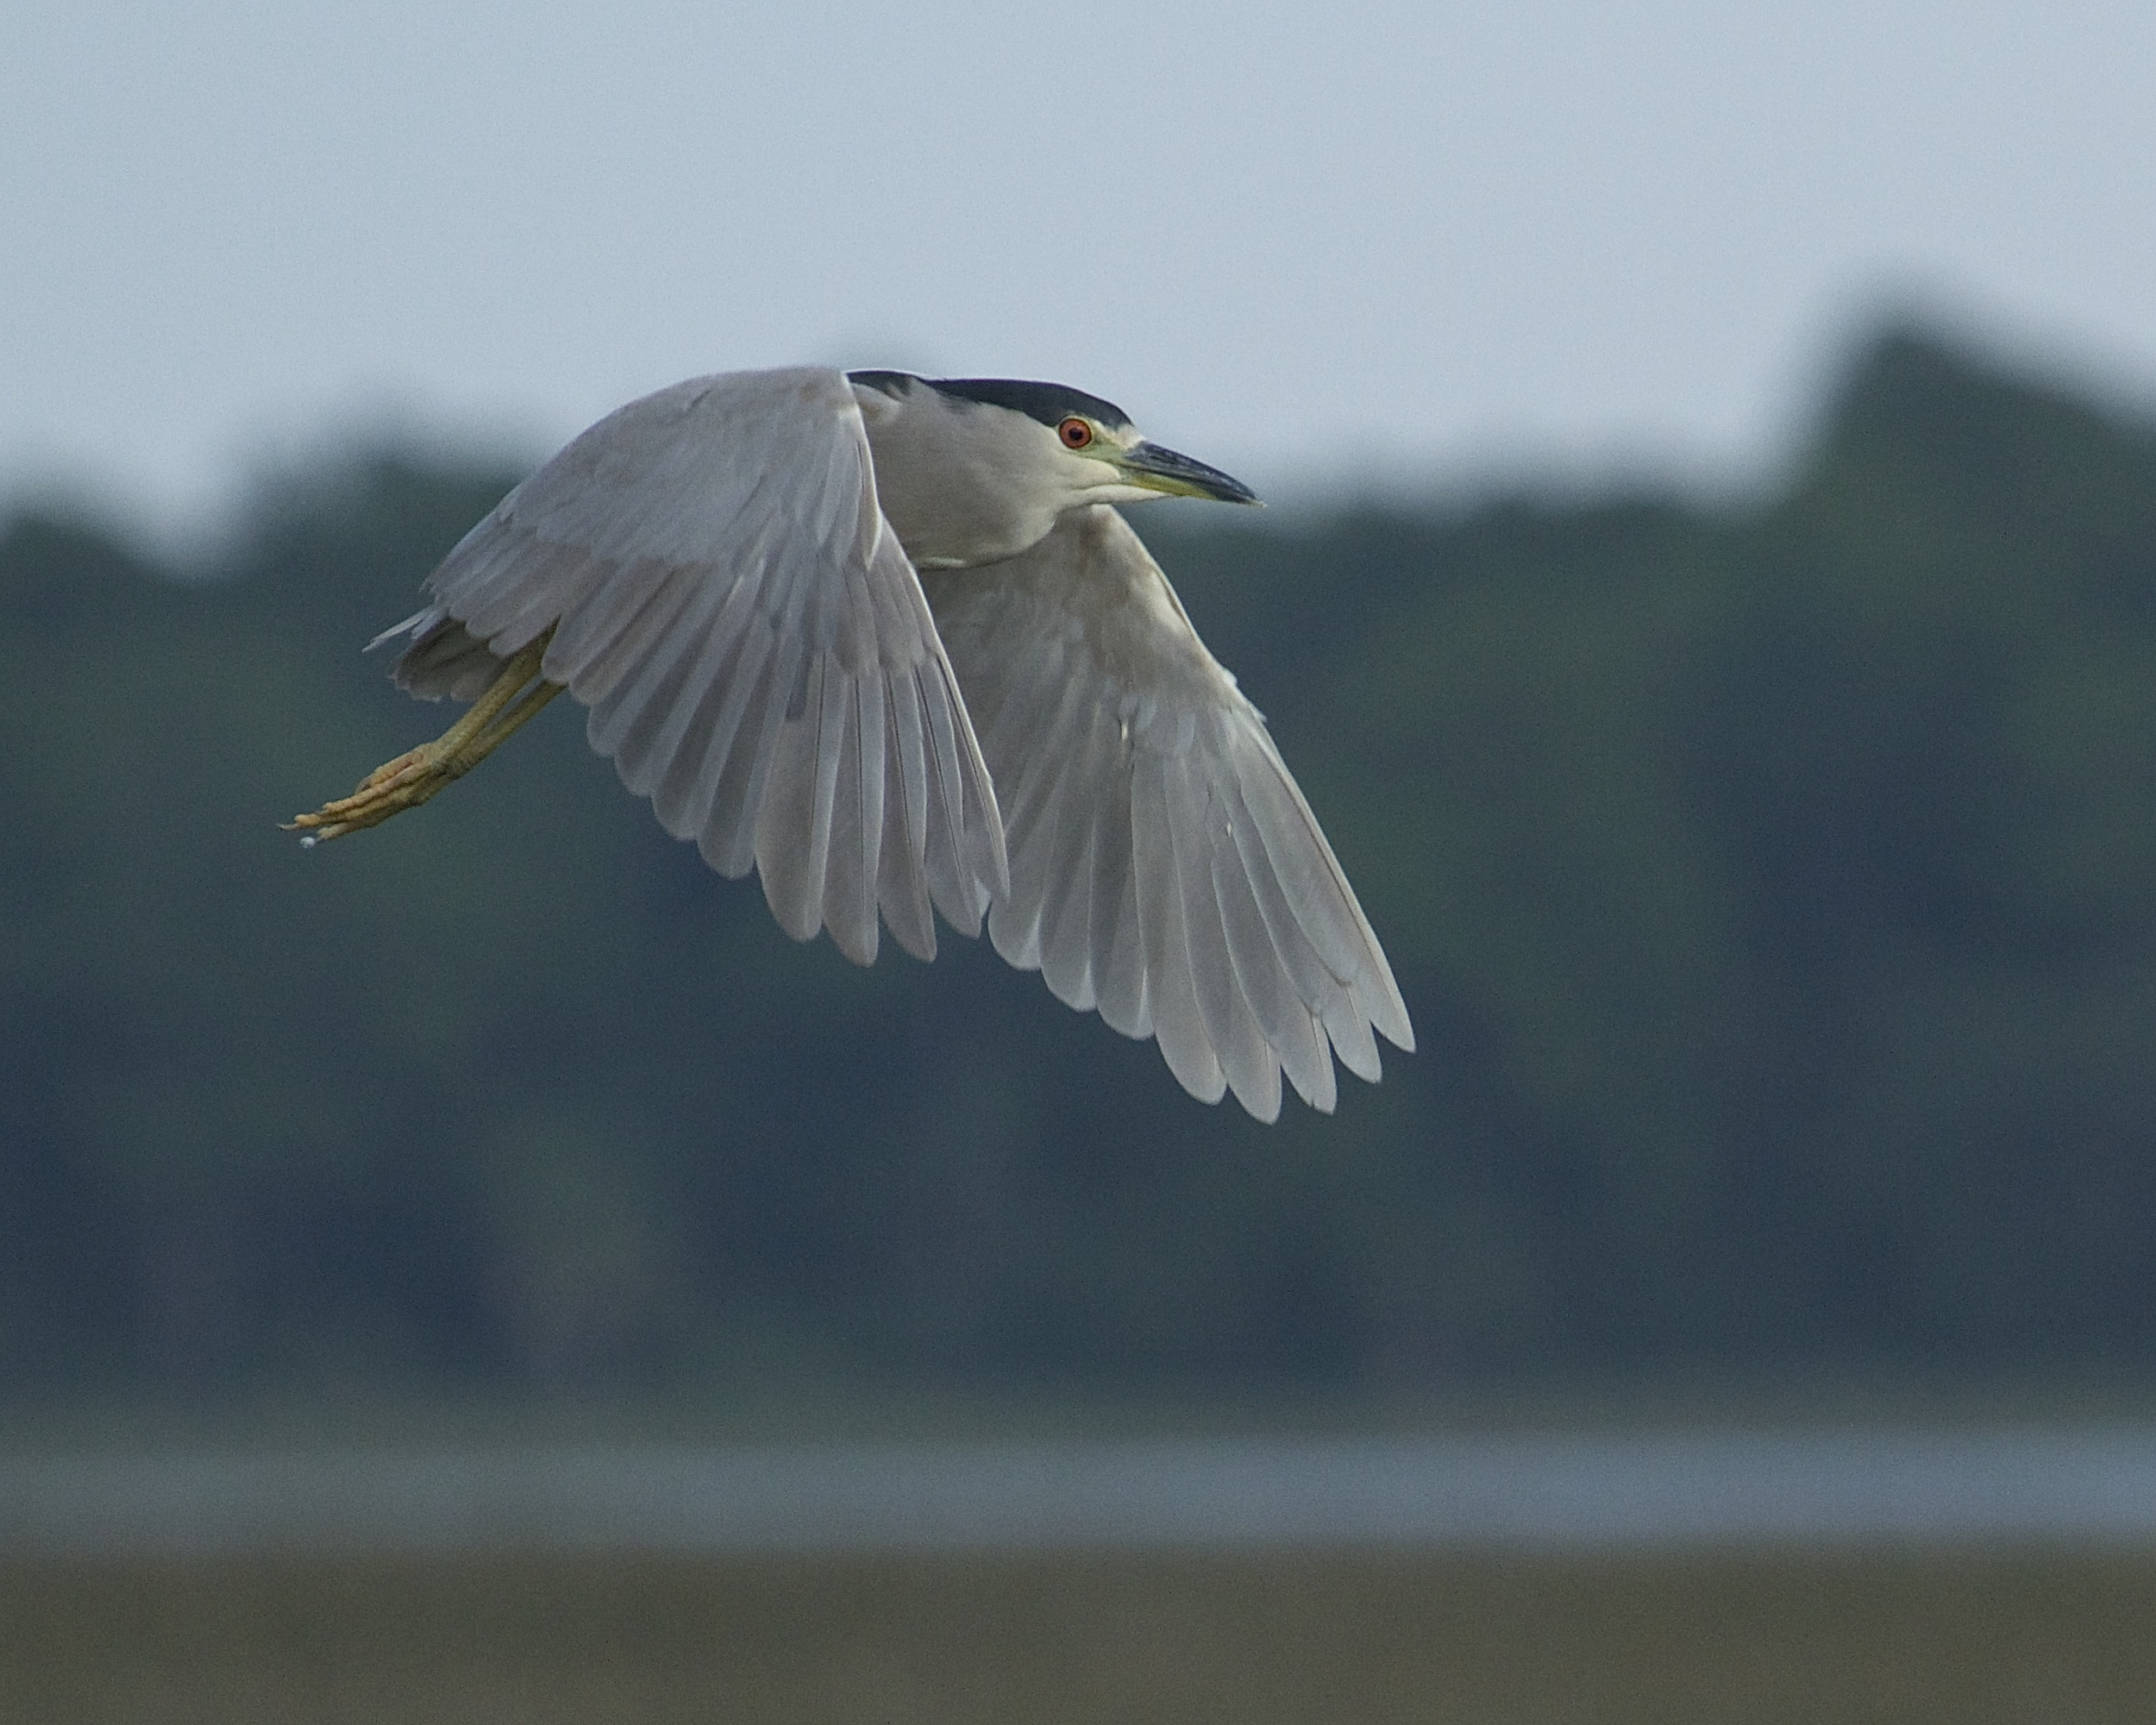 Something spooks about a half dozen night herons from their roosting tree…but what?